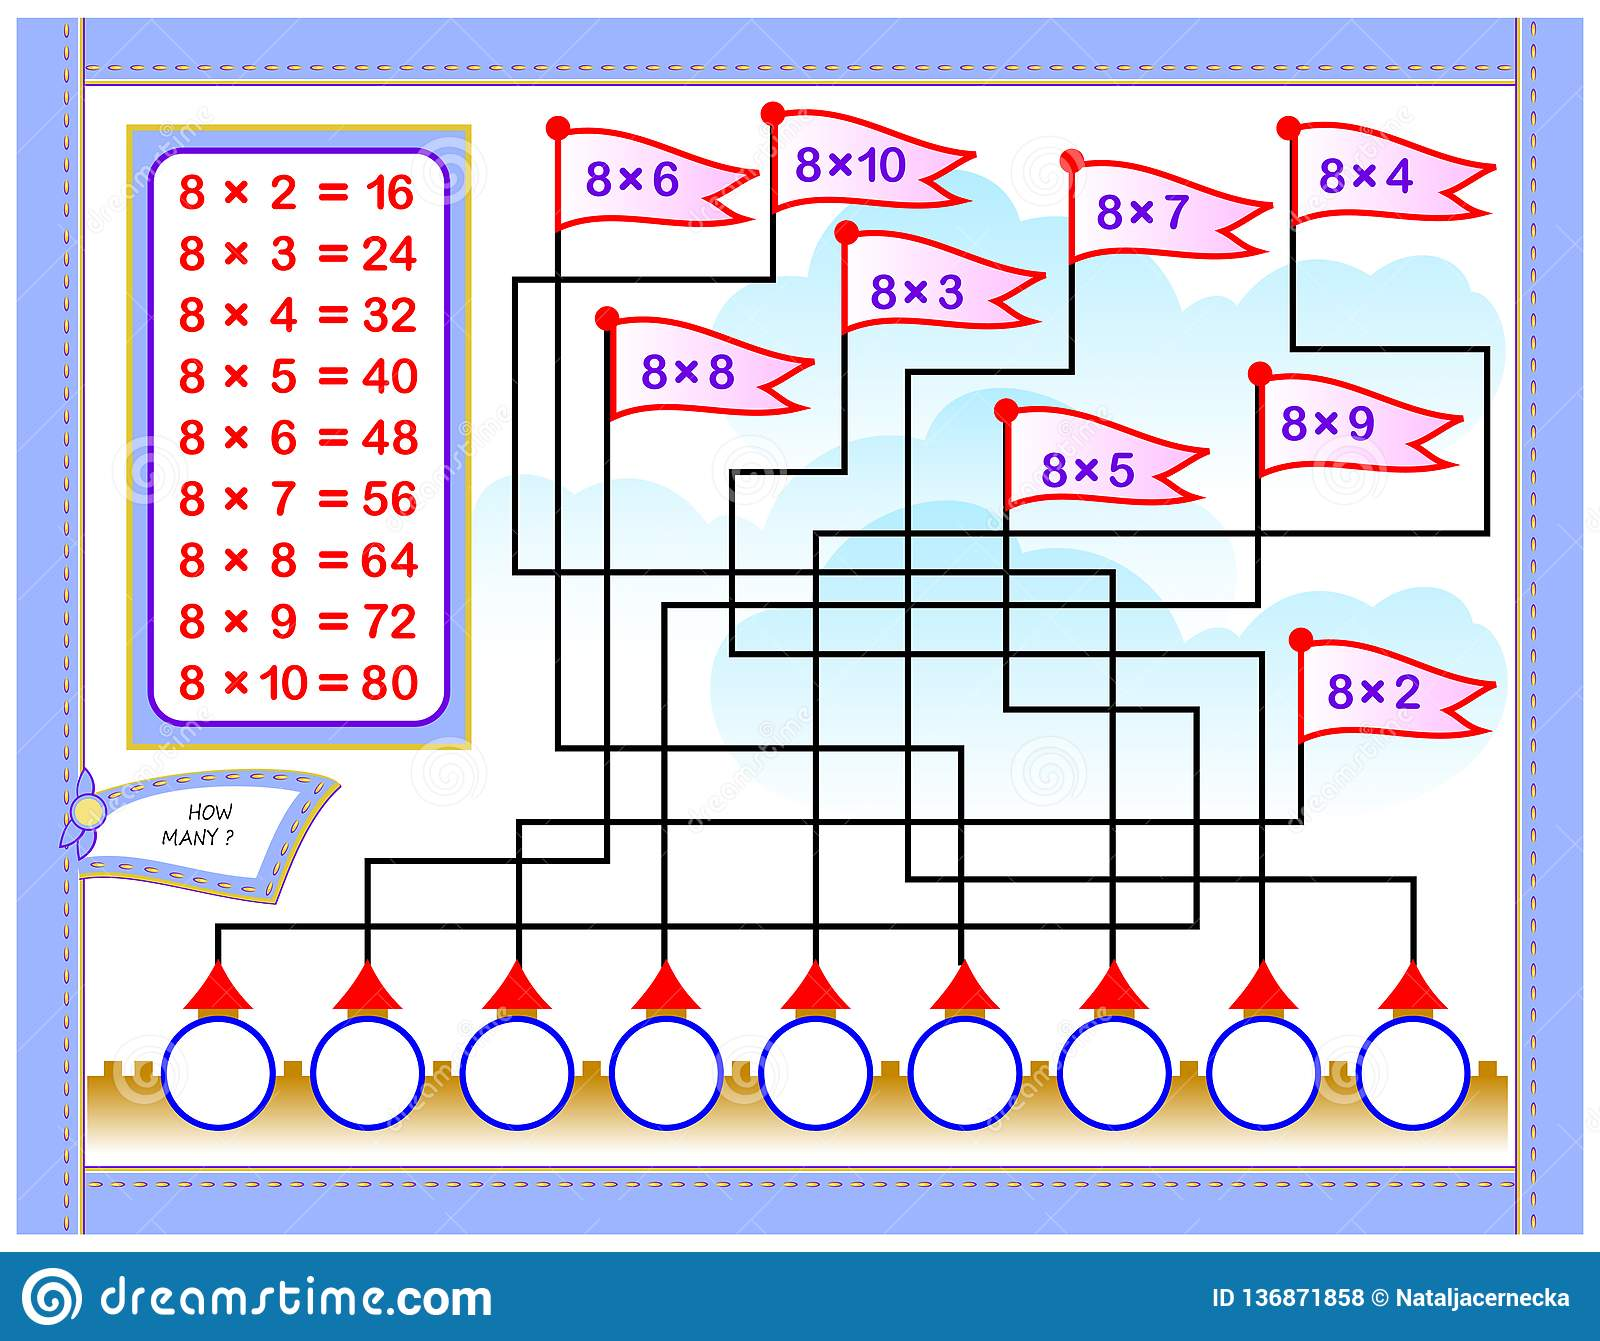 Multiplication Table By 8 For Kids Write The Numbers In